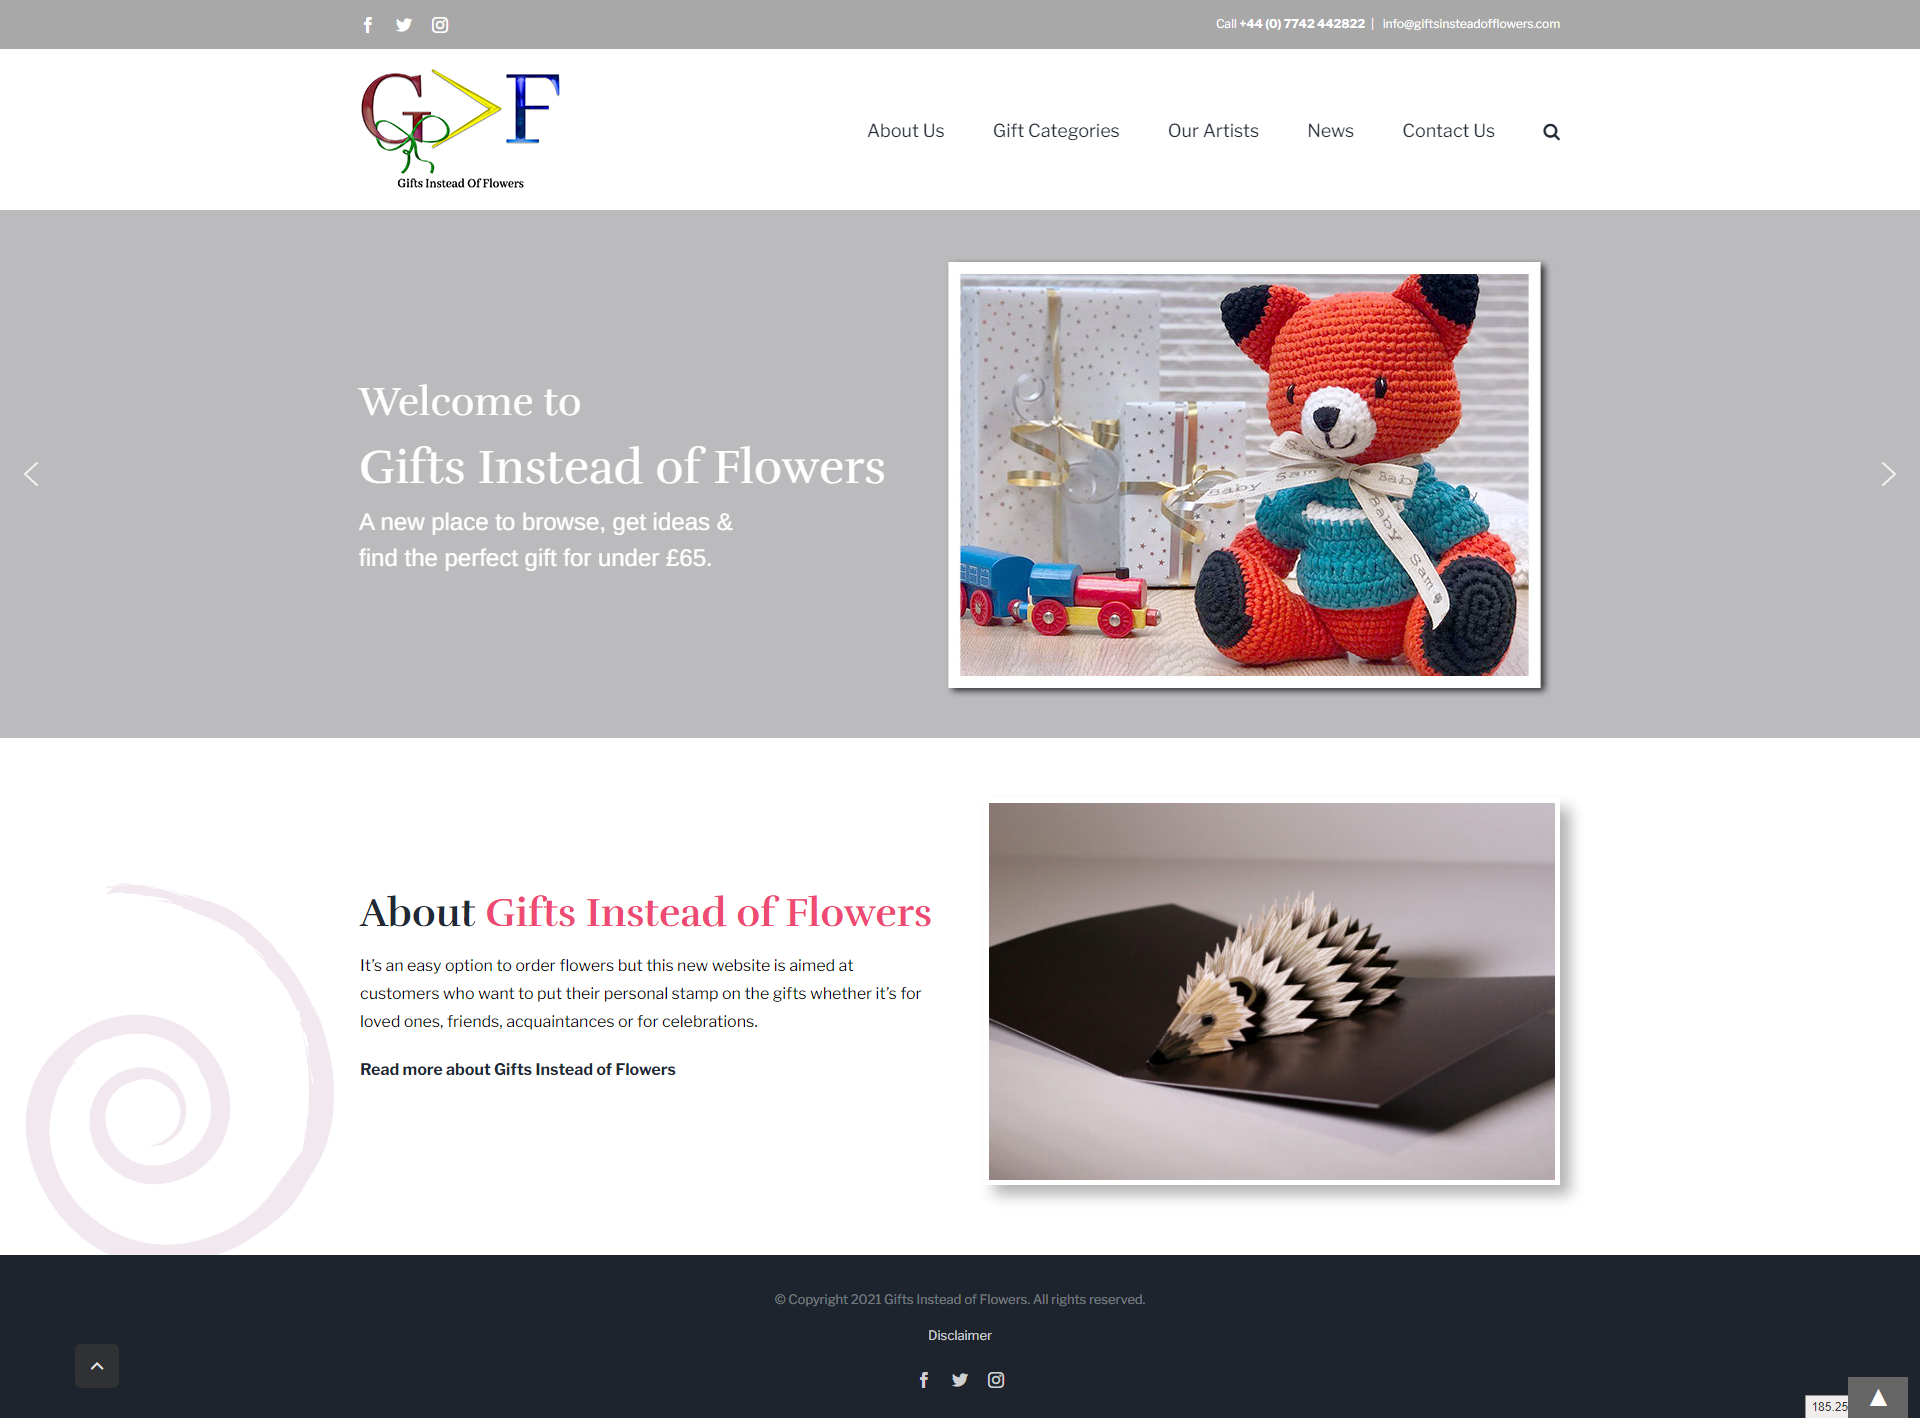 Gifts Instead of Flowers website